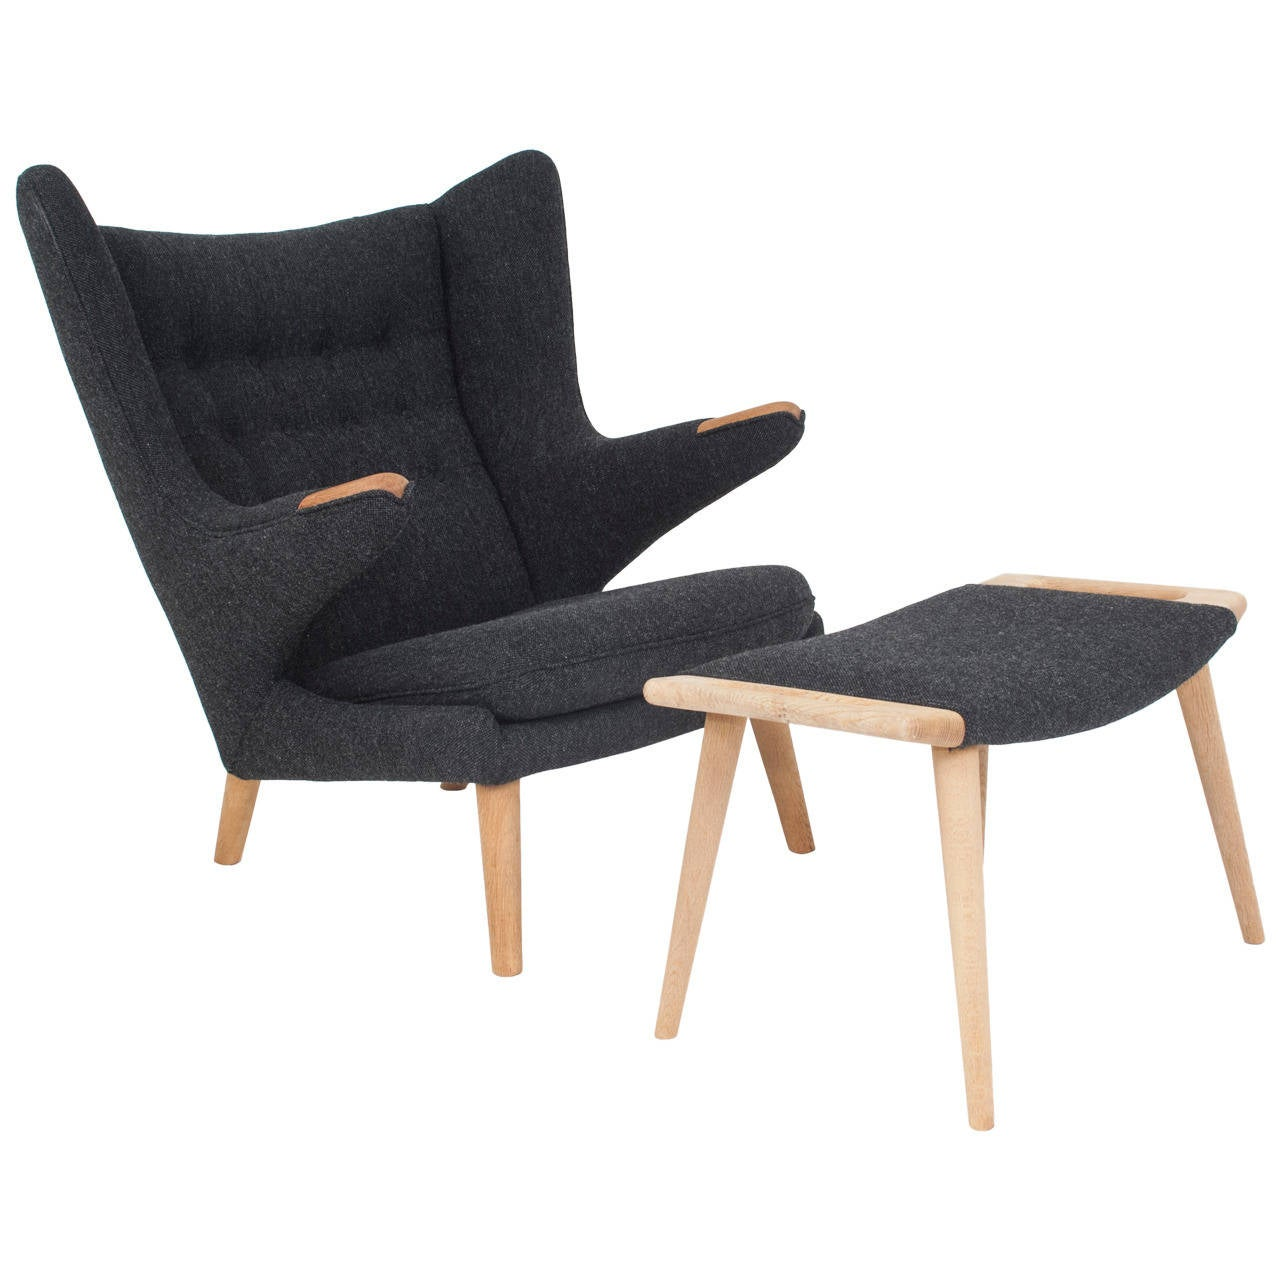 hans j wegner papa bear chair and stool by ap stolen for. Black Bedroom Furniture Sets. Home Design Ideas